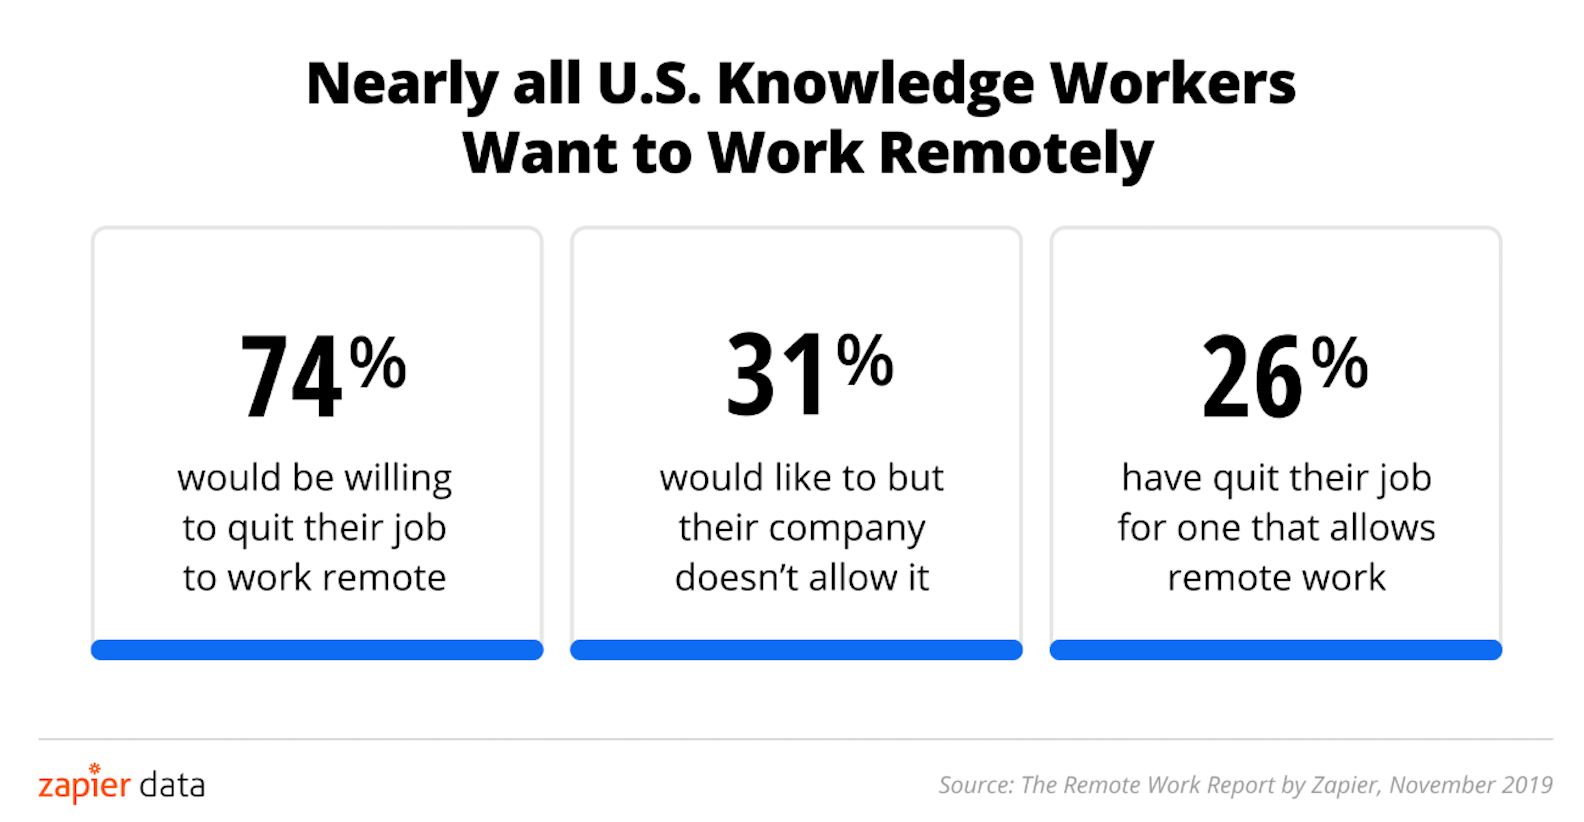 74% would quit a job to do so, 31% would like to work remotely but aren't allowed, and 26% have quit a job to do so.